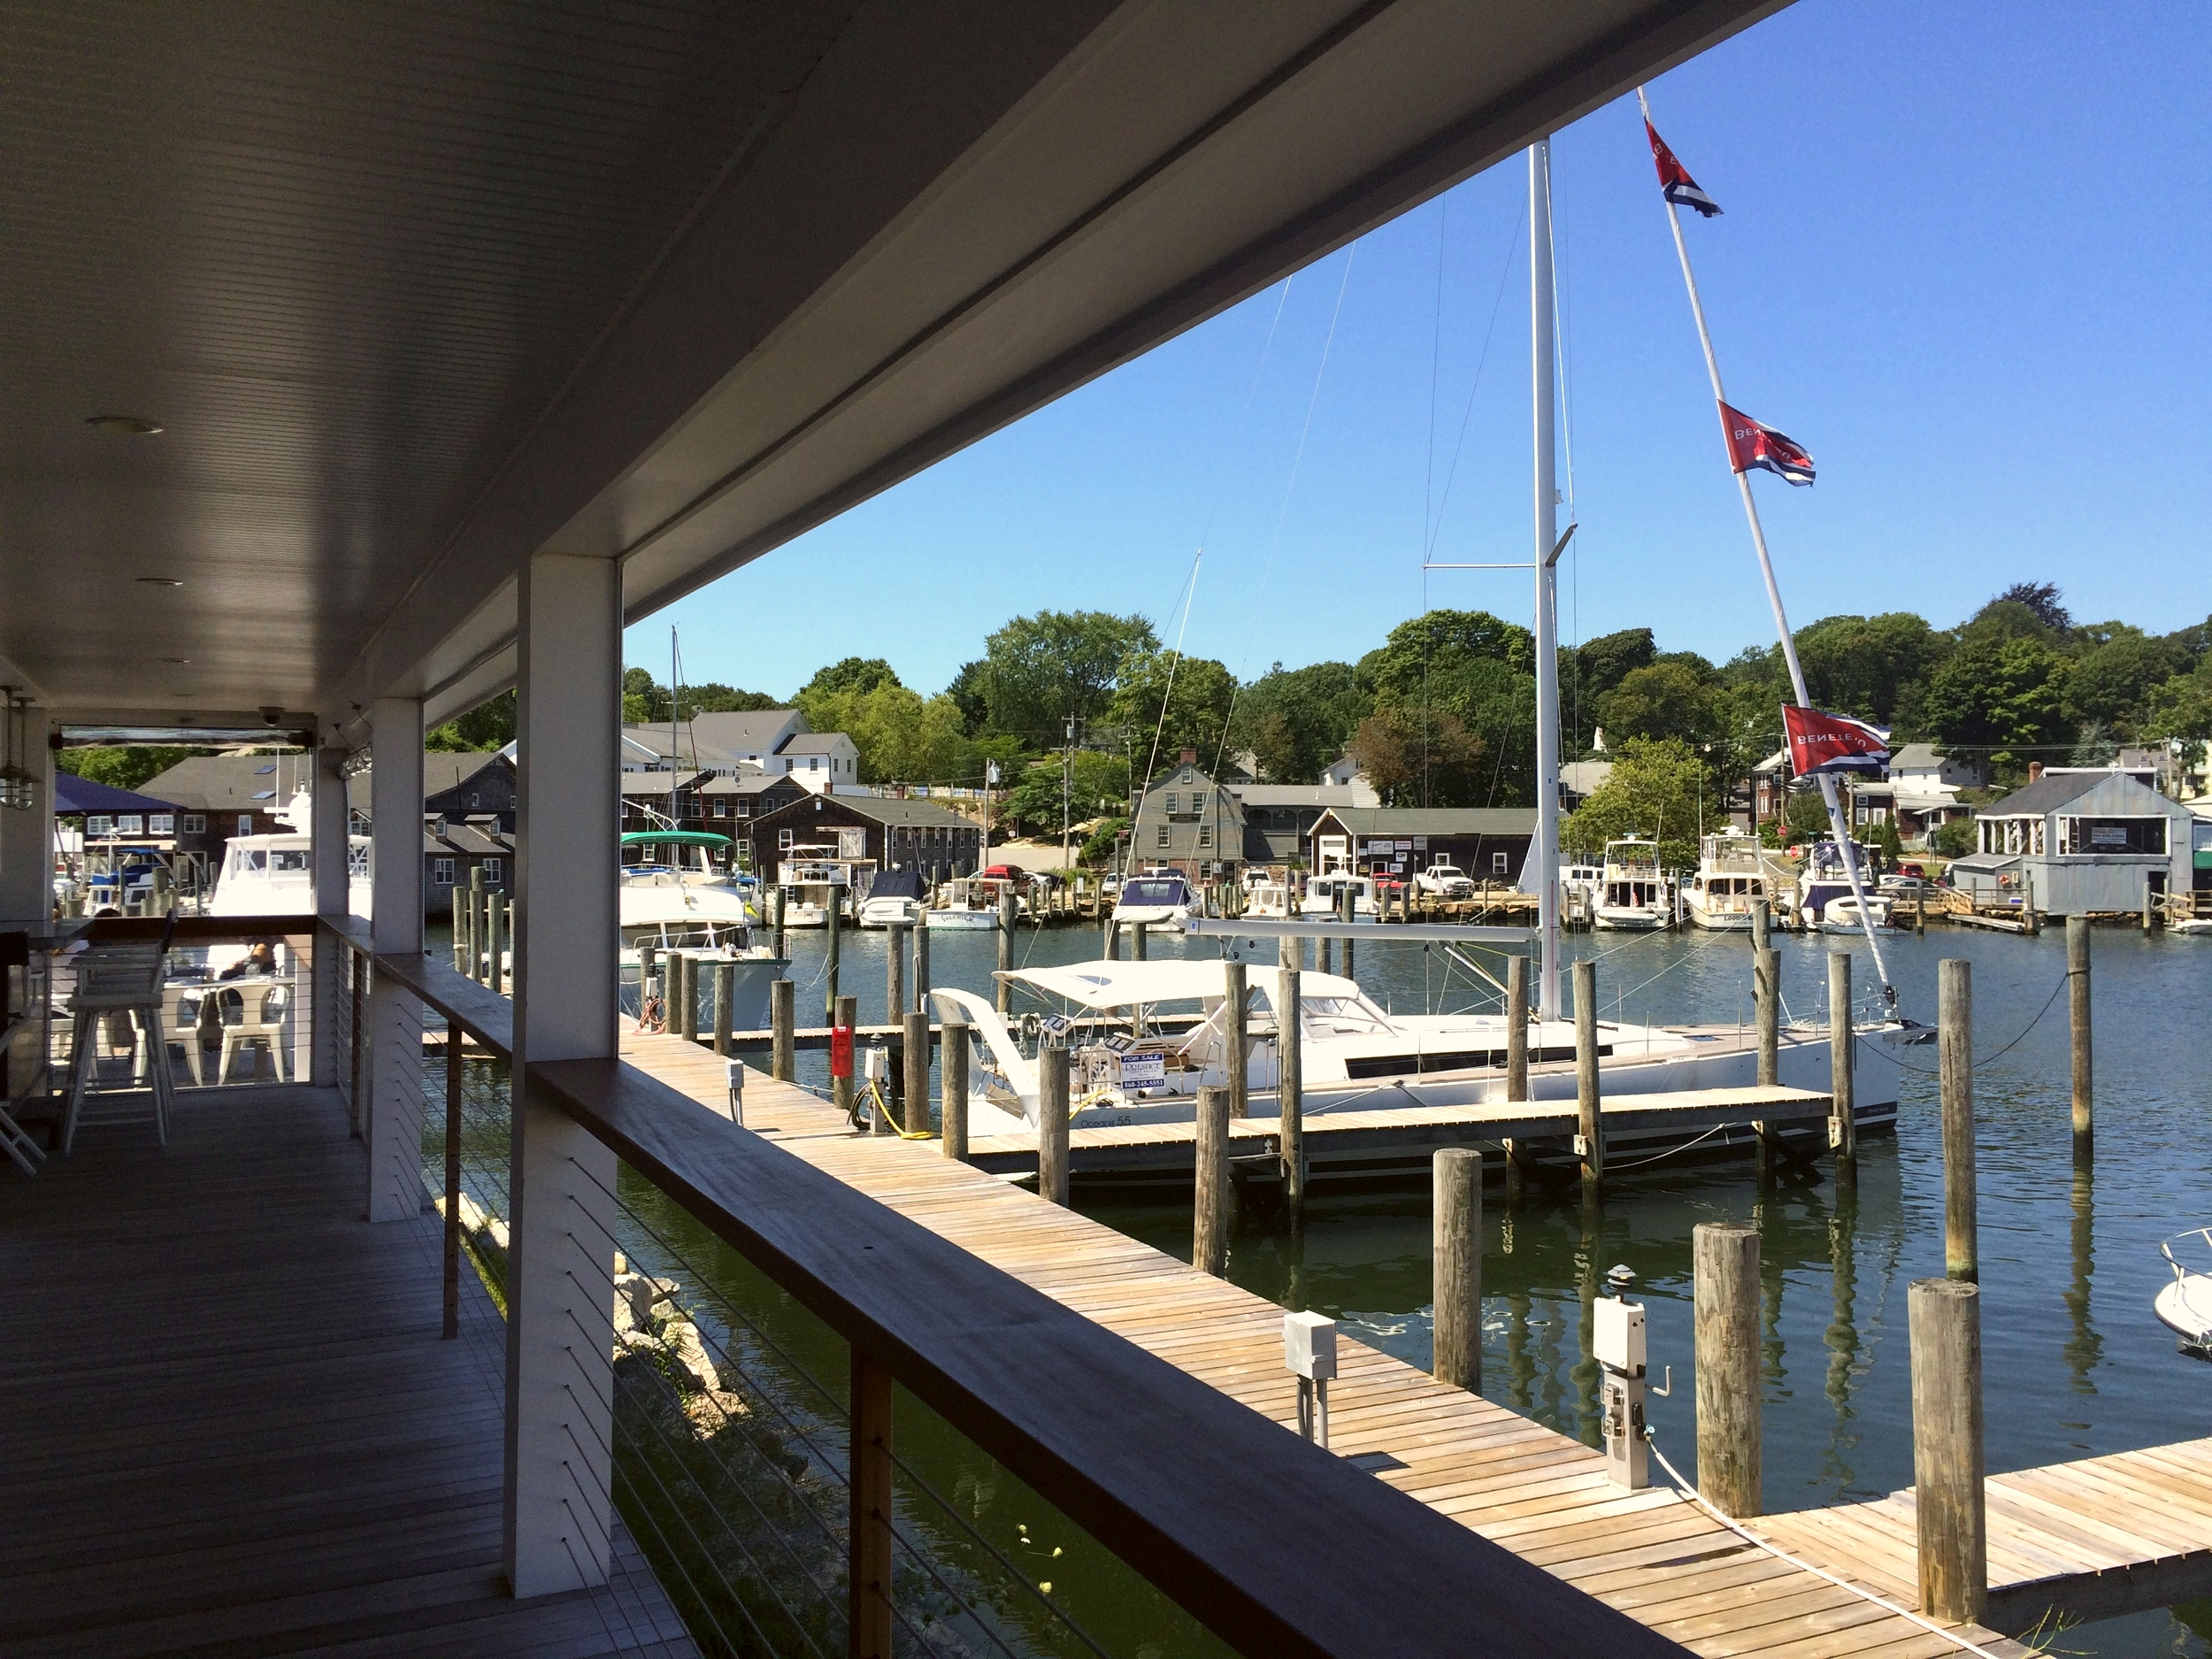 Mystic Seaport: Our view from Red 36, a restaurant situated right on the Mystic River.